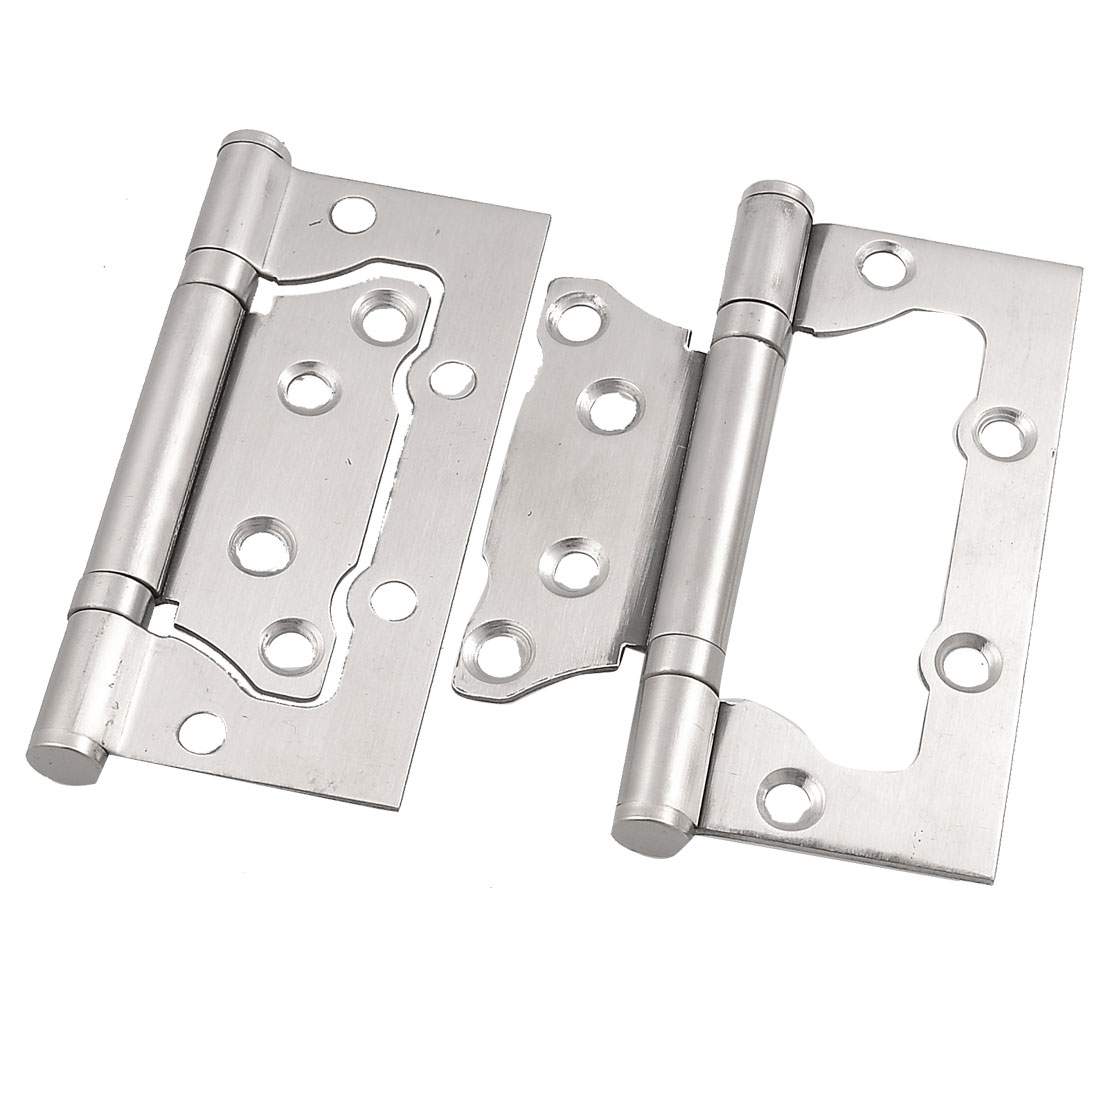 "2 Pcs Silver Tone Omnidirectional Rotatable Closet Door Hinge 4"" Long"